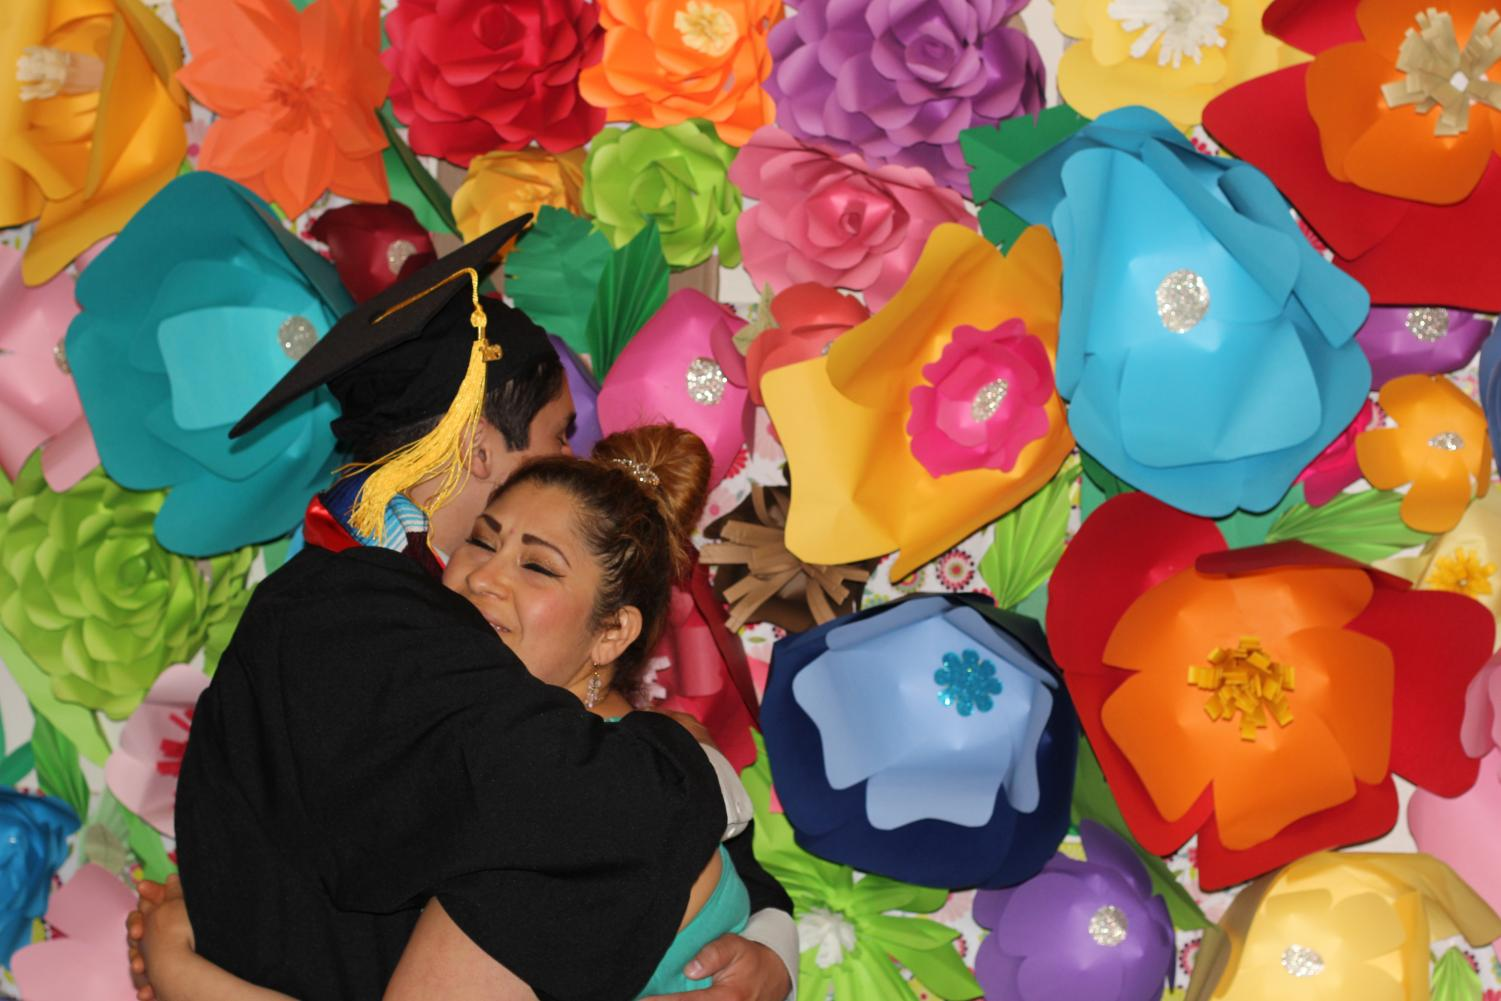 Bryan Josue Cruz hugs his mother, Rosa Maria Telles at his graduation earlier this month. By Brian Mohler